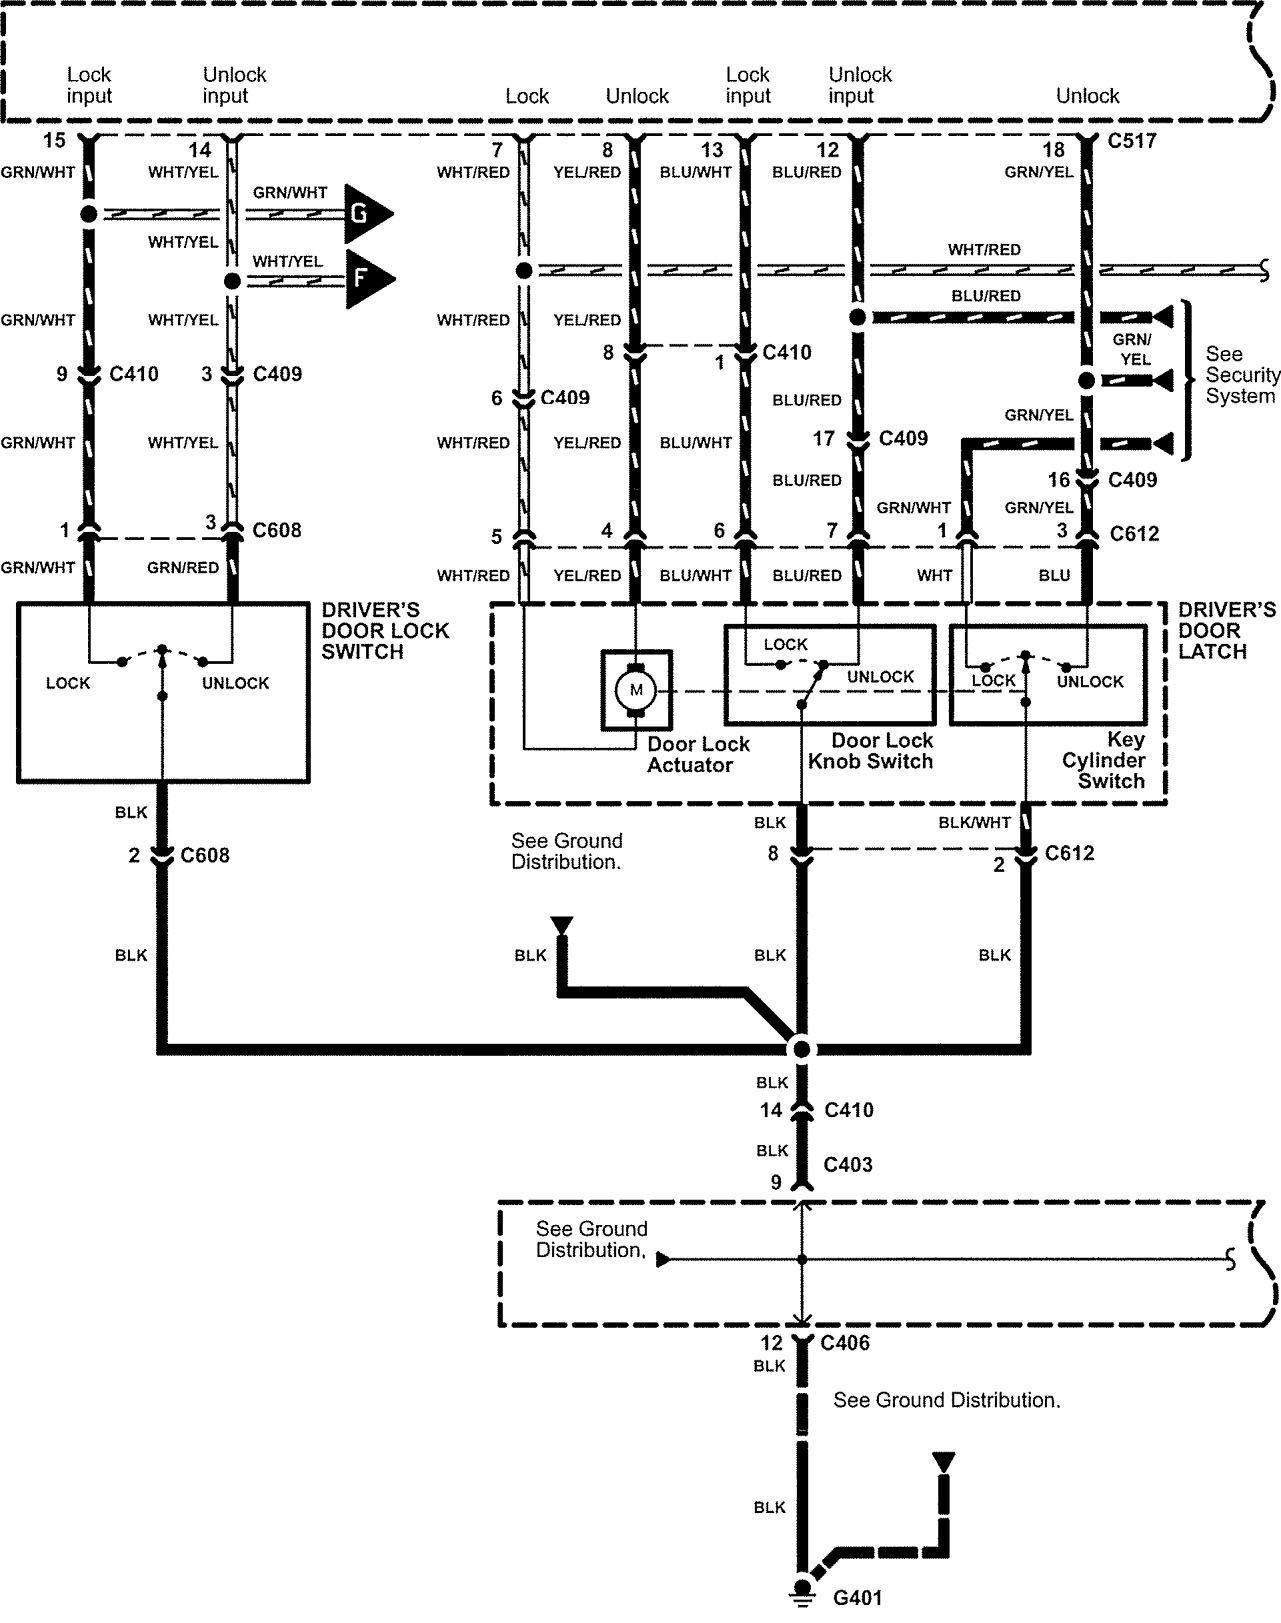 Acura Rsx Stereo Wiring Diagram. Acura. Auto Wiring Diagram